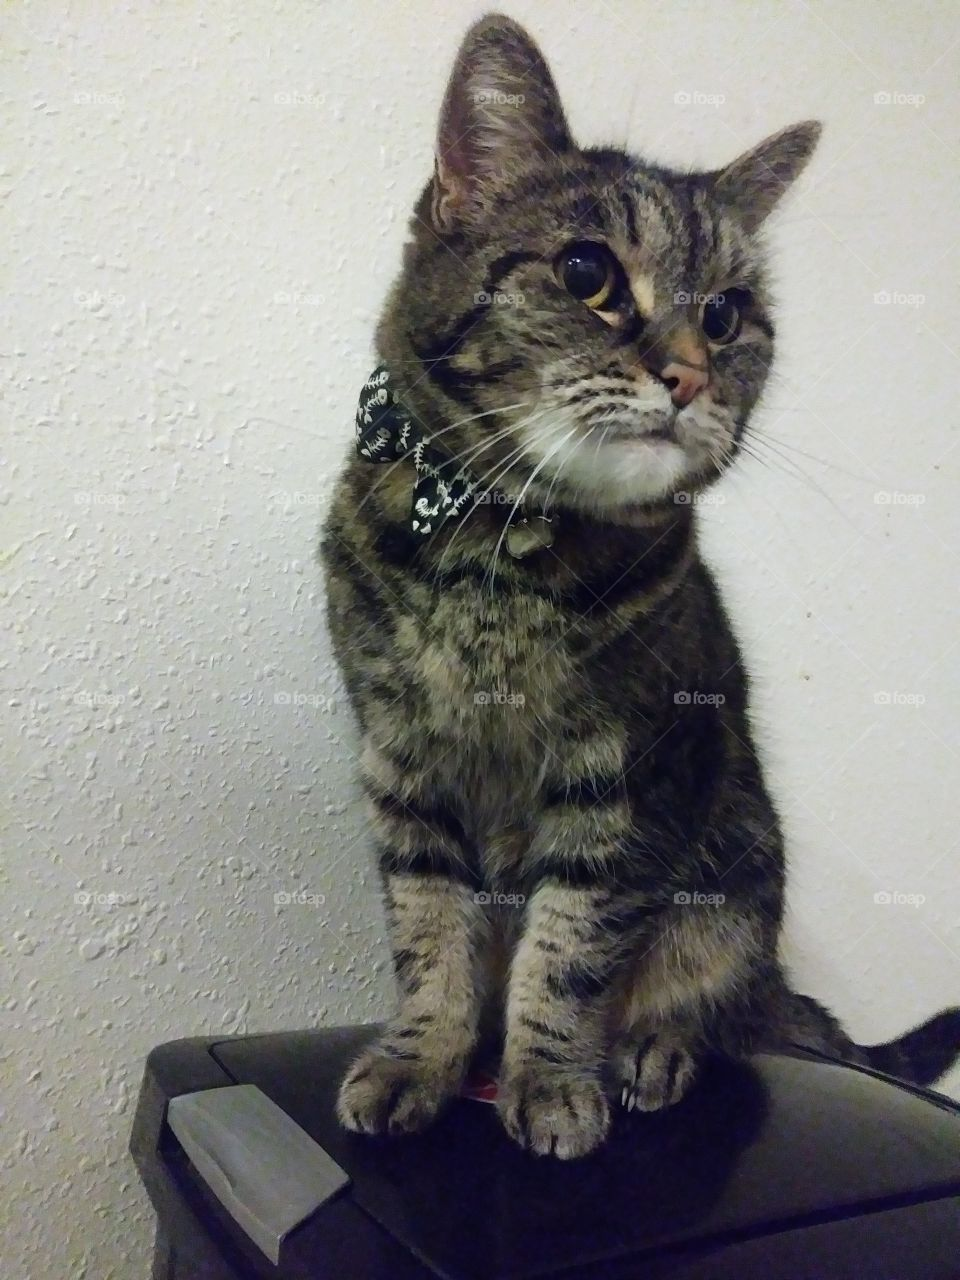 The adorable female cat named Elsi showing off her very cute bowtie